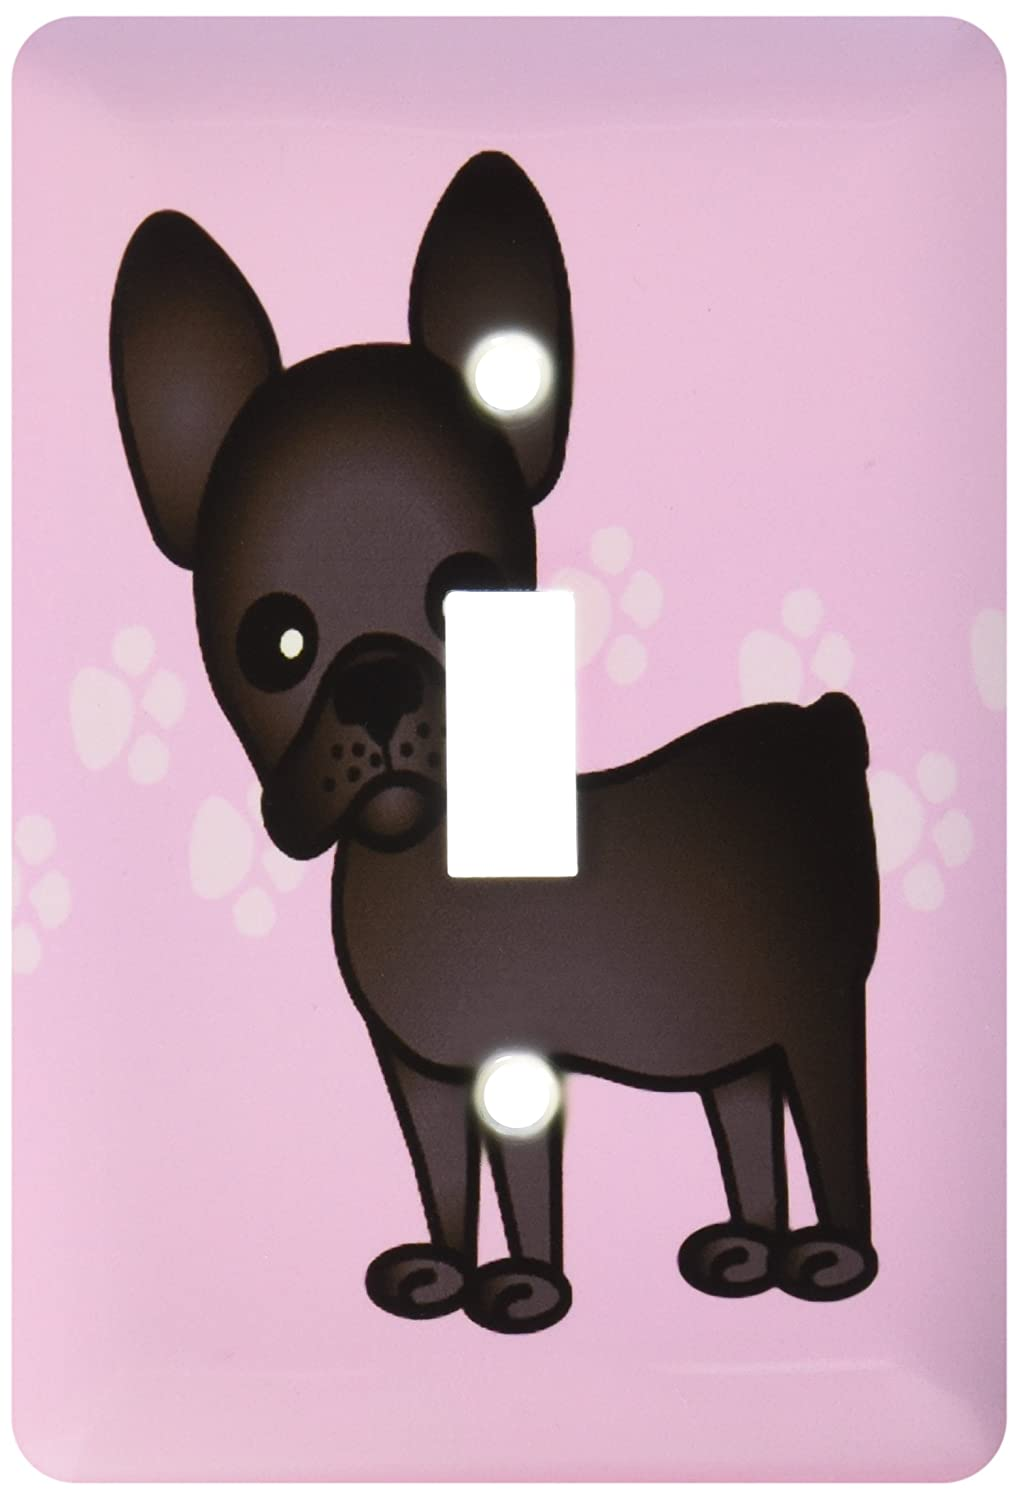 3drose Lsp253191 Cute Black Brindle French Bulldog Pink With